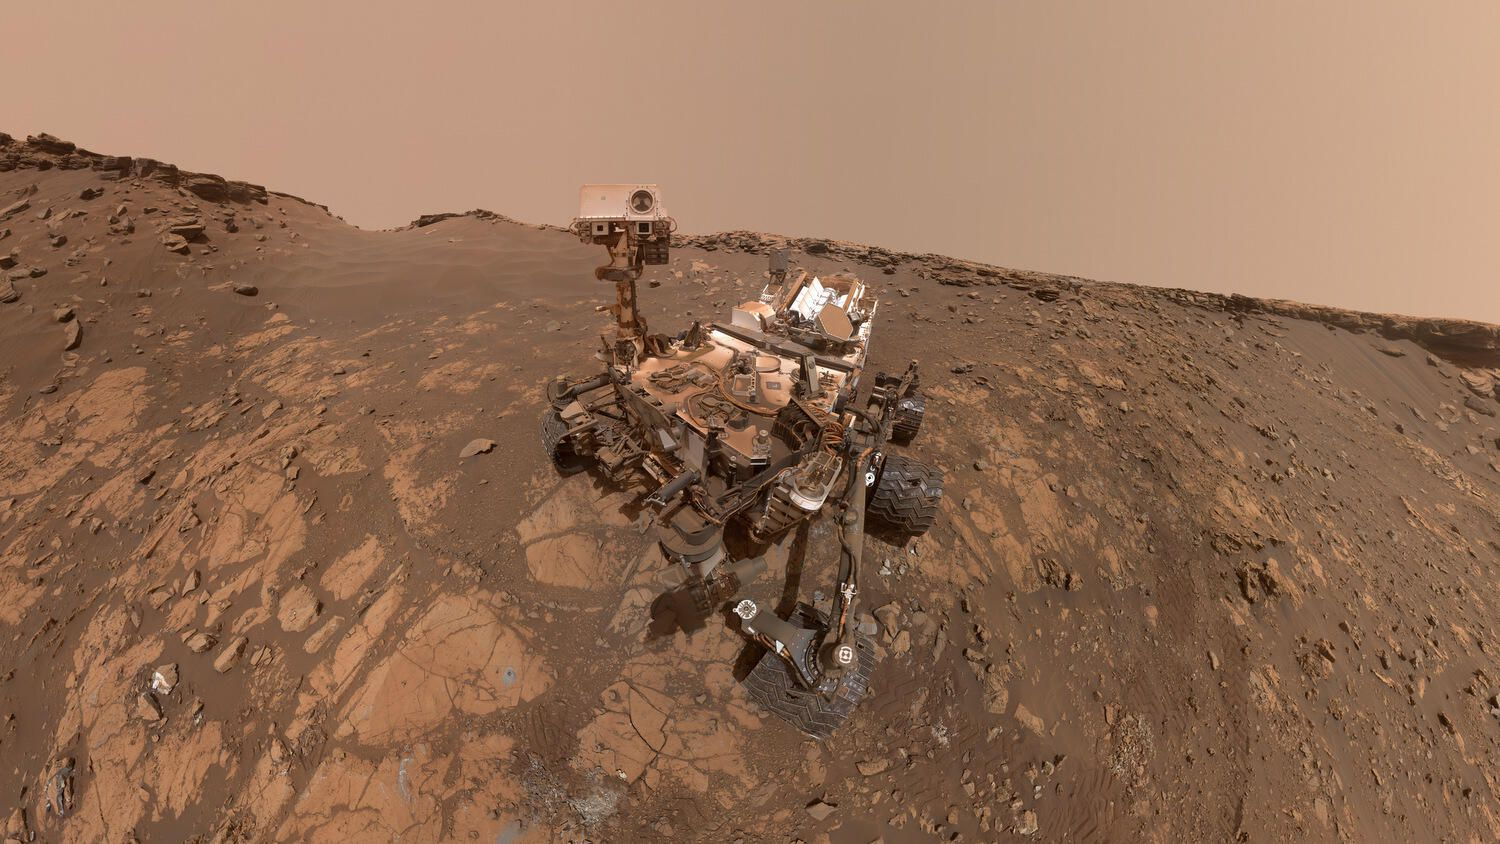 NASA Curiosity rover starts epic 'summer road trip' across Mars